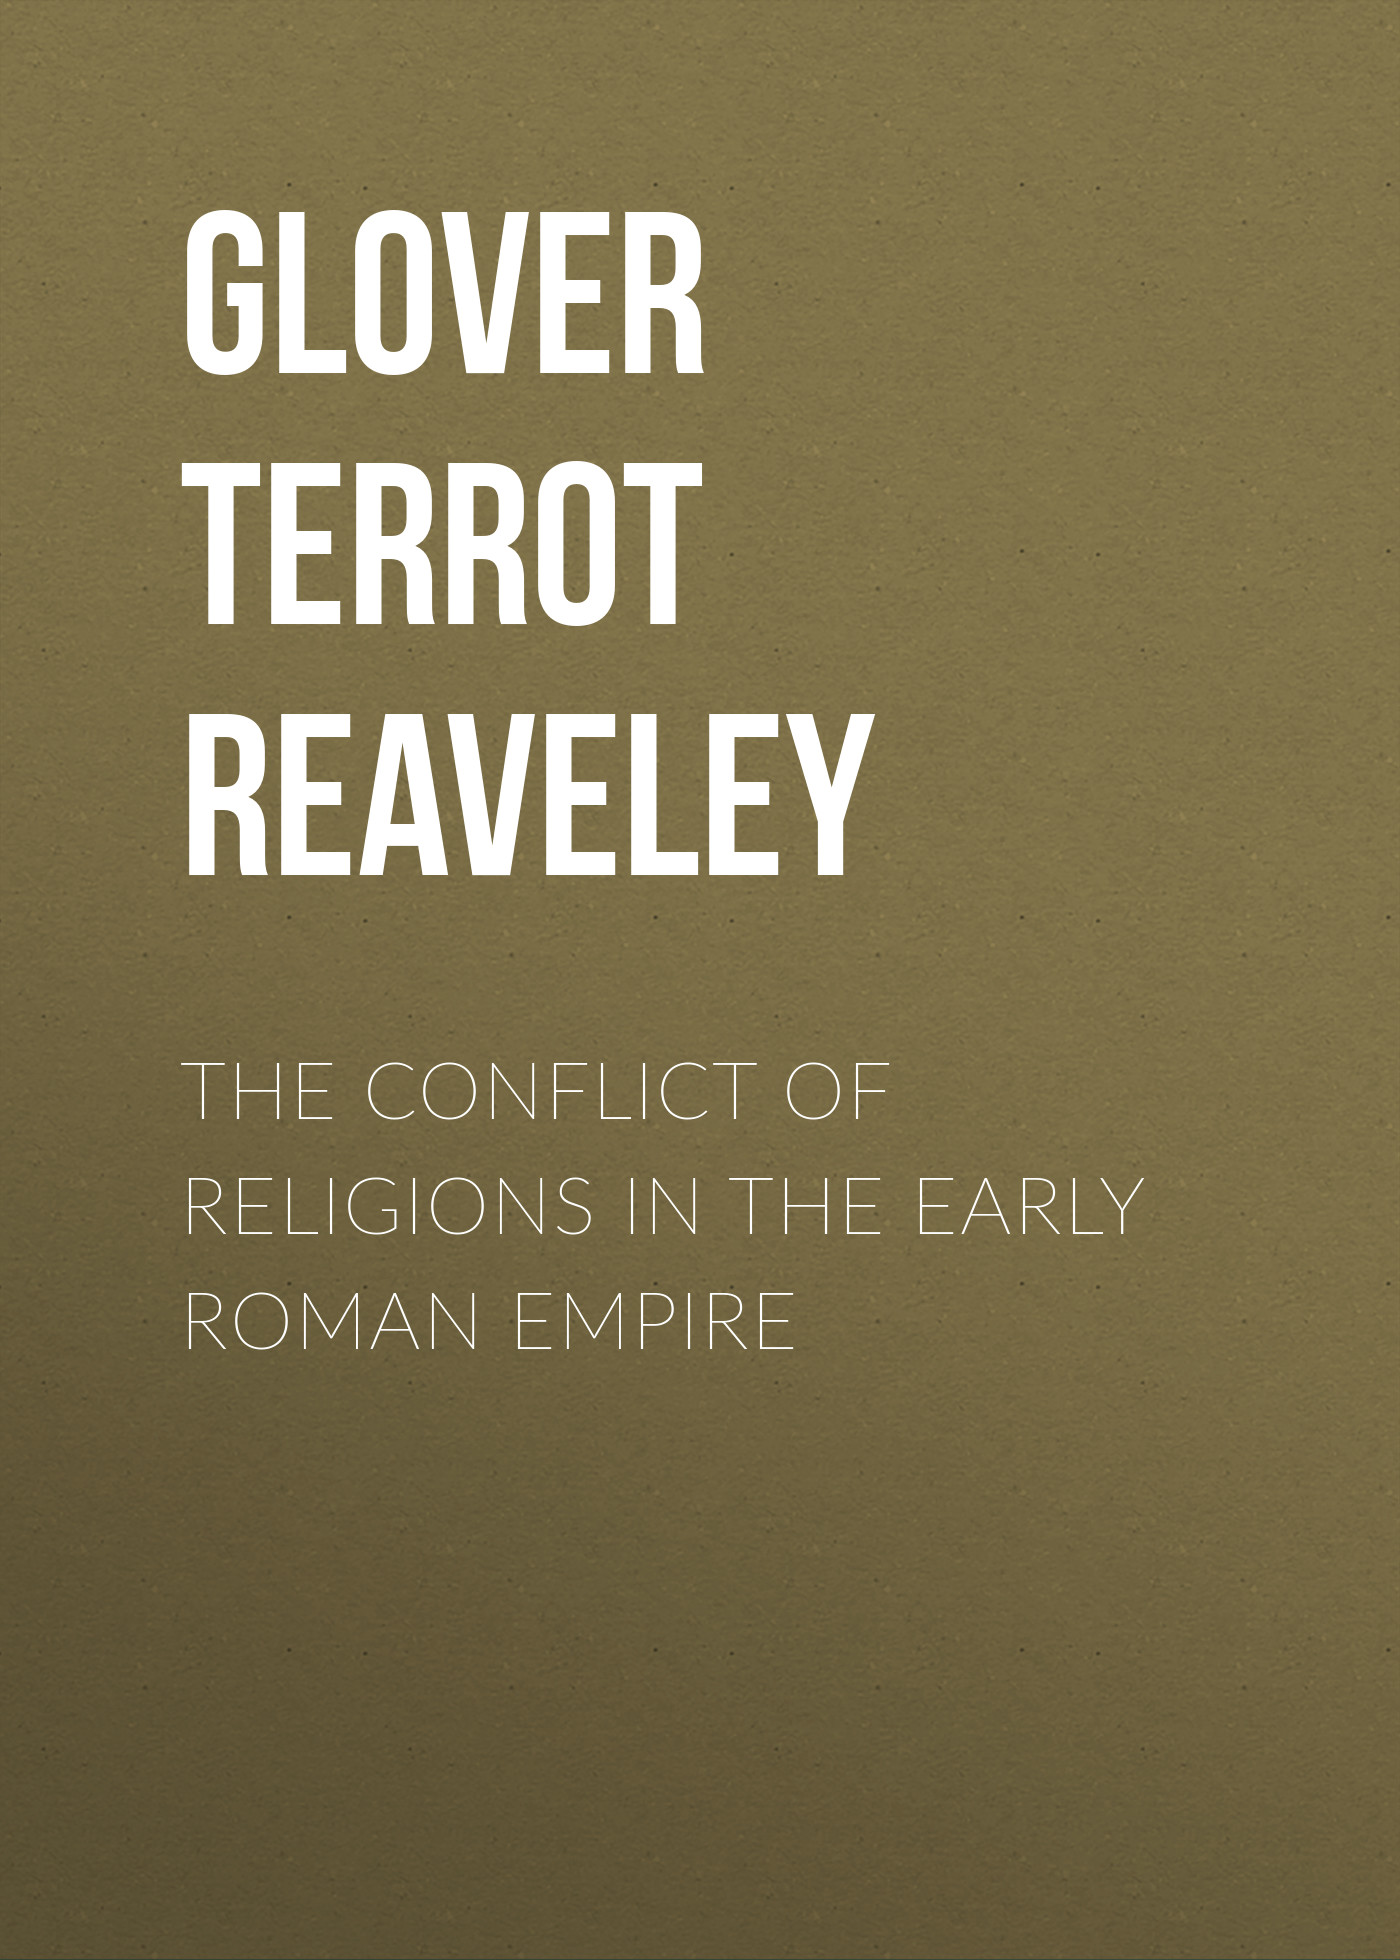 Glover Terrot Reaveley The Conflict of Religions in the Early Roman Empire цена